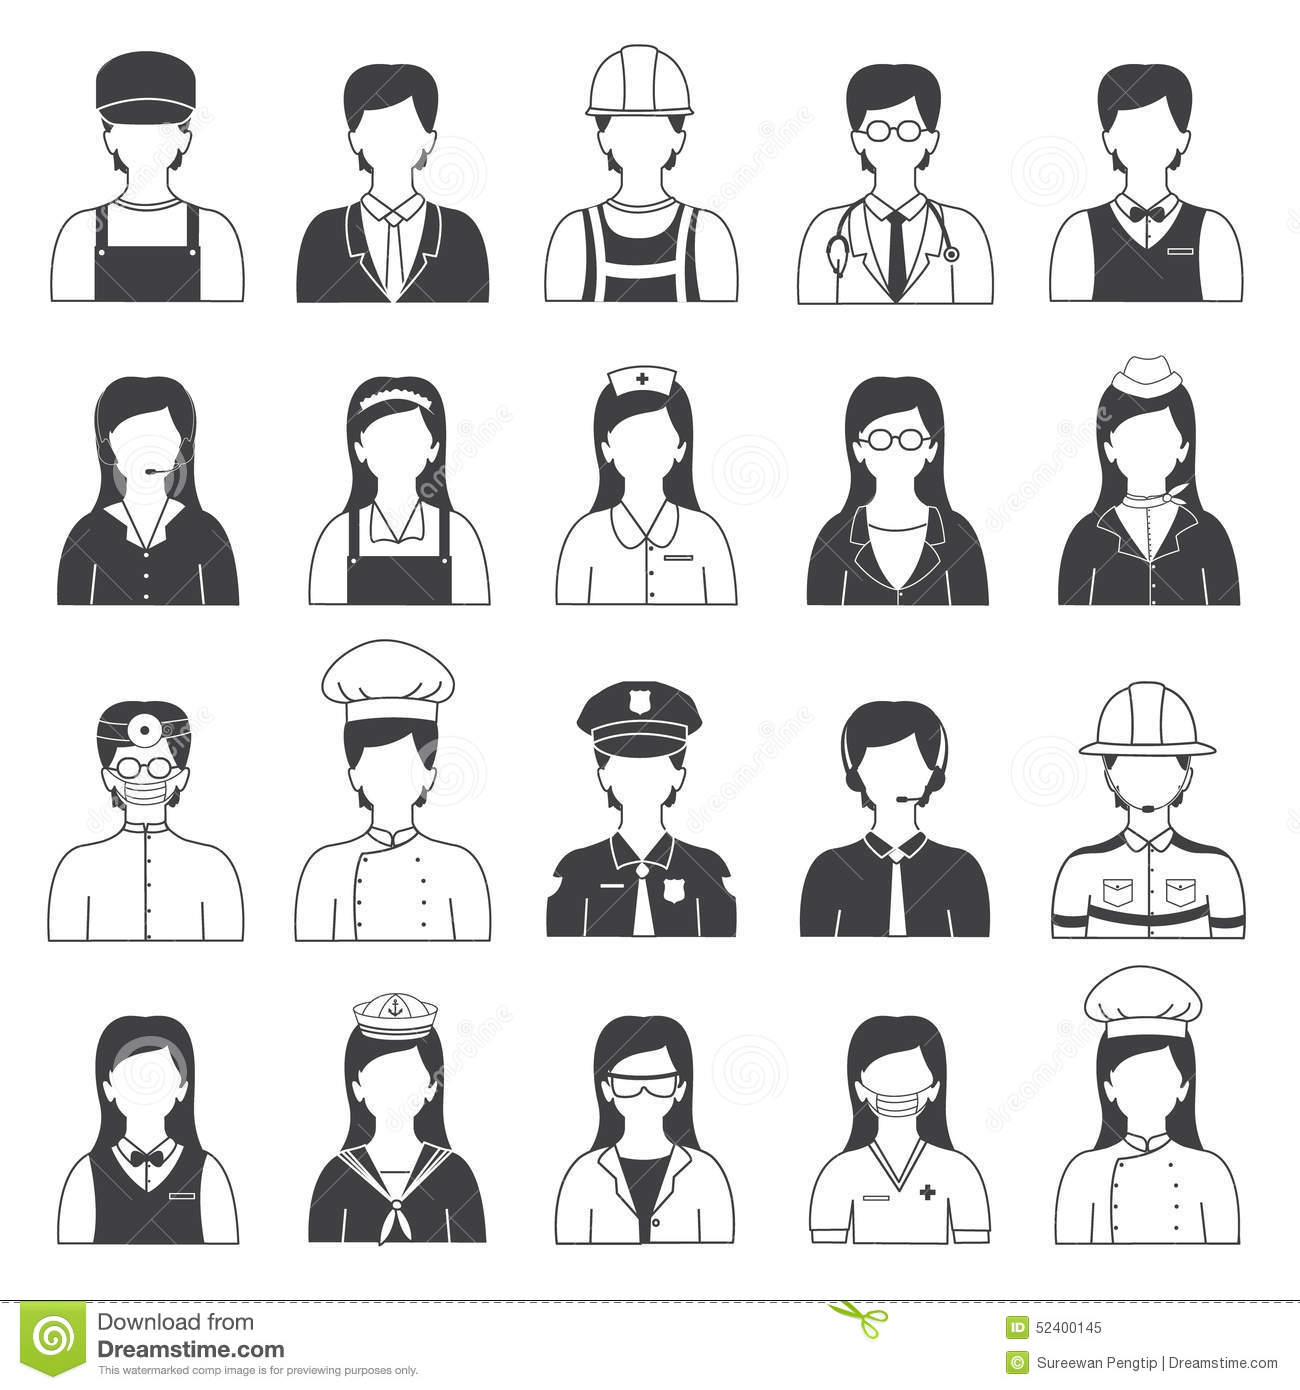 Stock Illustration Career People Occupation Icons Set Black White Like Doctor Nurse Secretary Etc Image52400145 on illustration career information